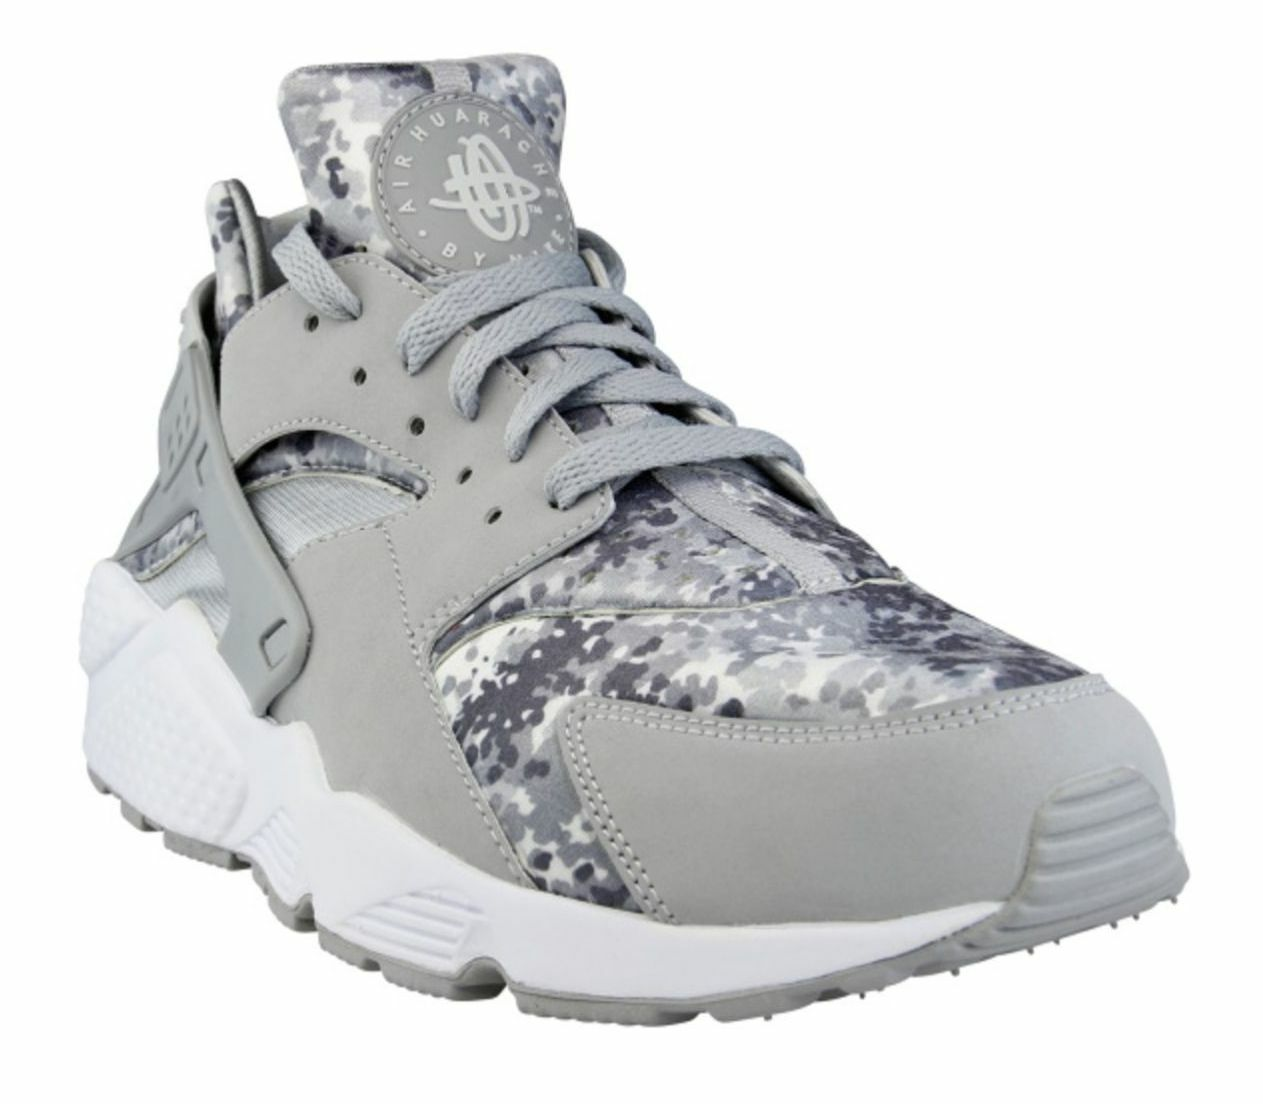 Nike Air Huarache 'GREY CAMO'  All Sizes  GENUINE  Free P&P